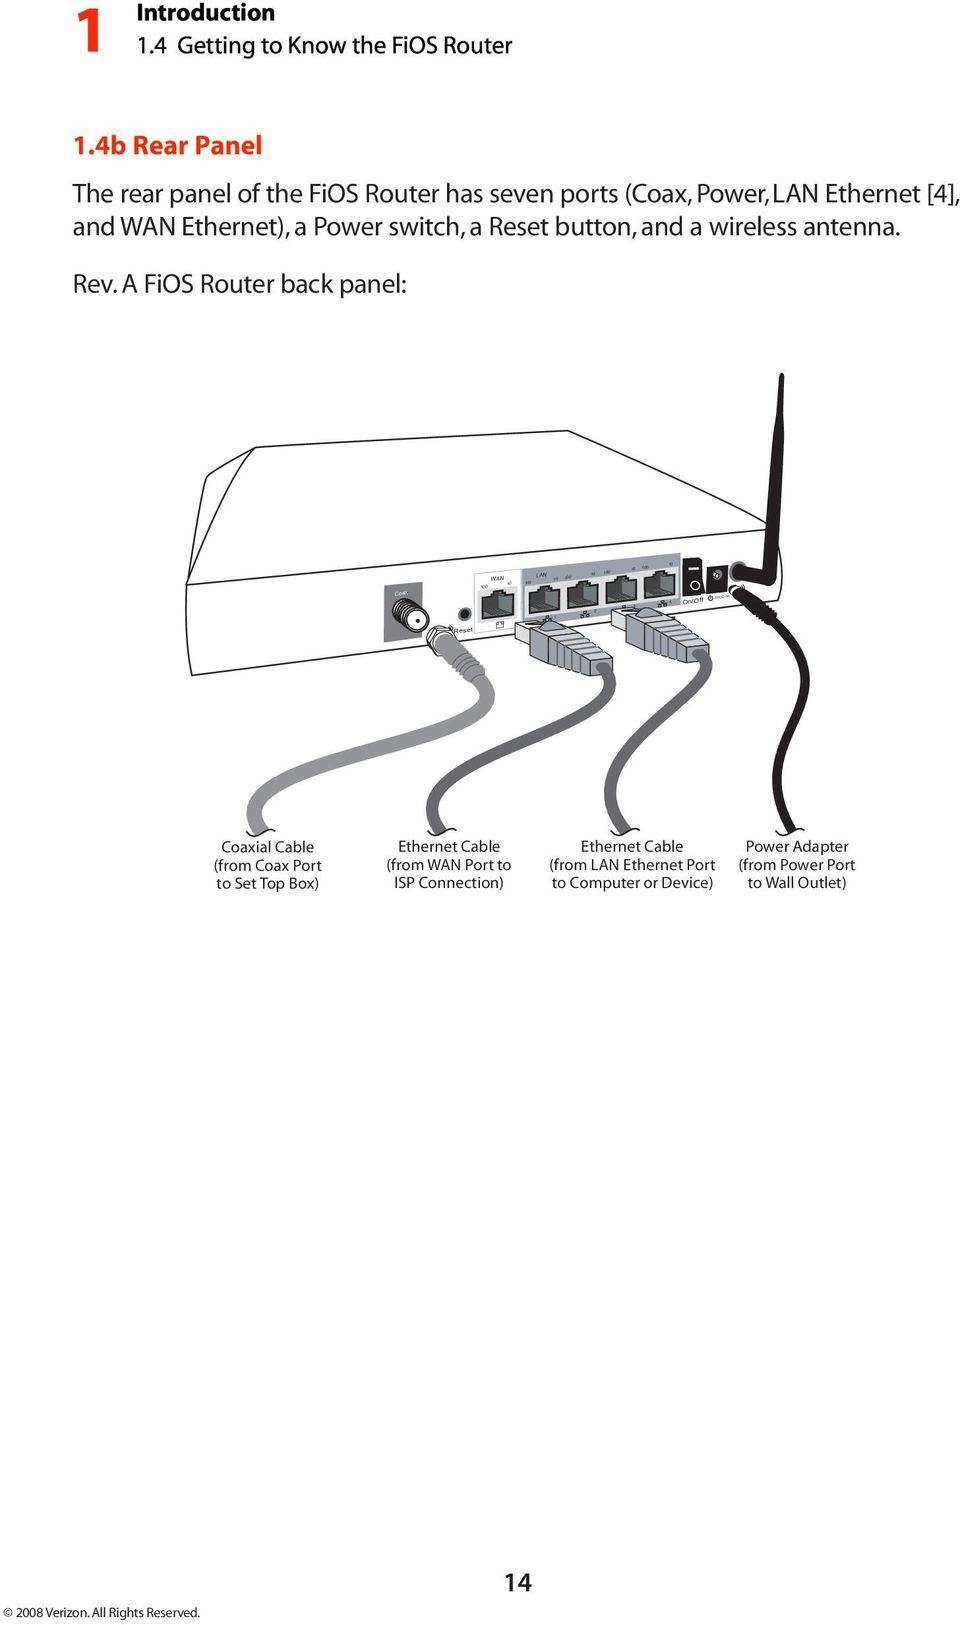 Verizon Fios Router Mi424wr User Manual Pdf Ethernet Wall Jack Wiring Reset Button And A Wireless Antenna Rev 15 5vdc 3a